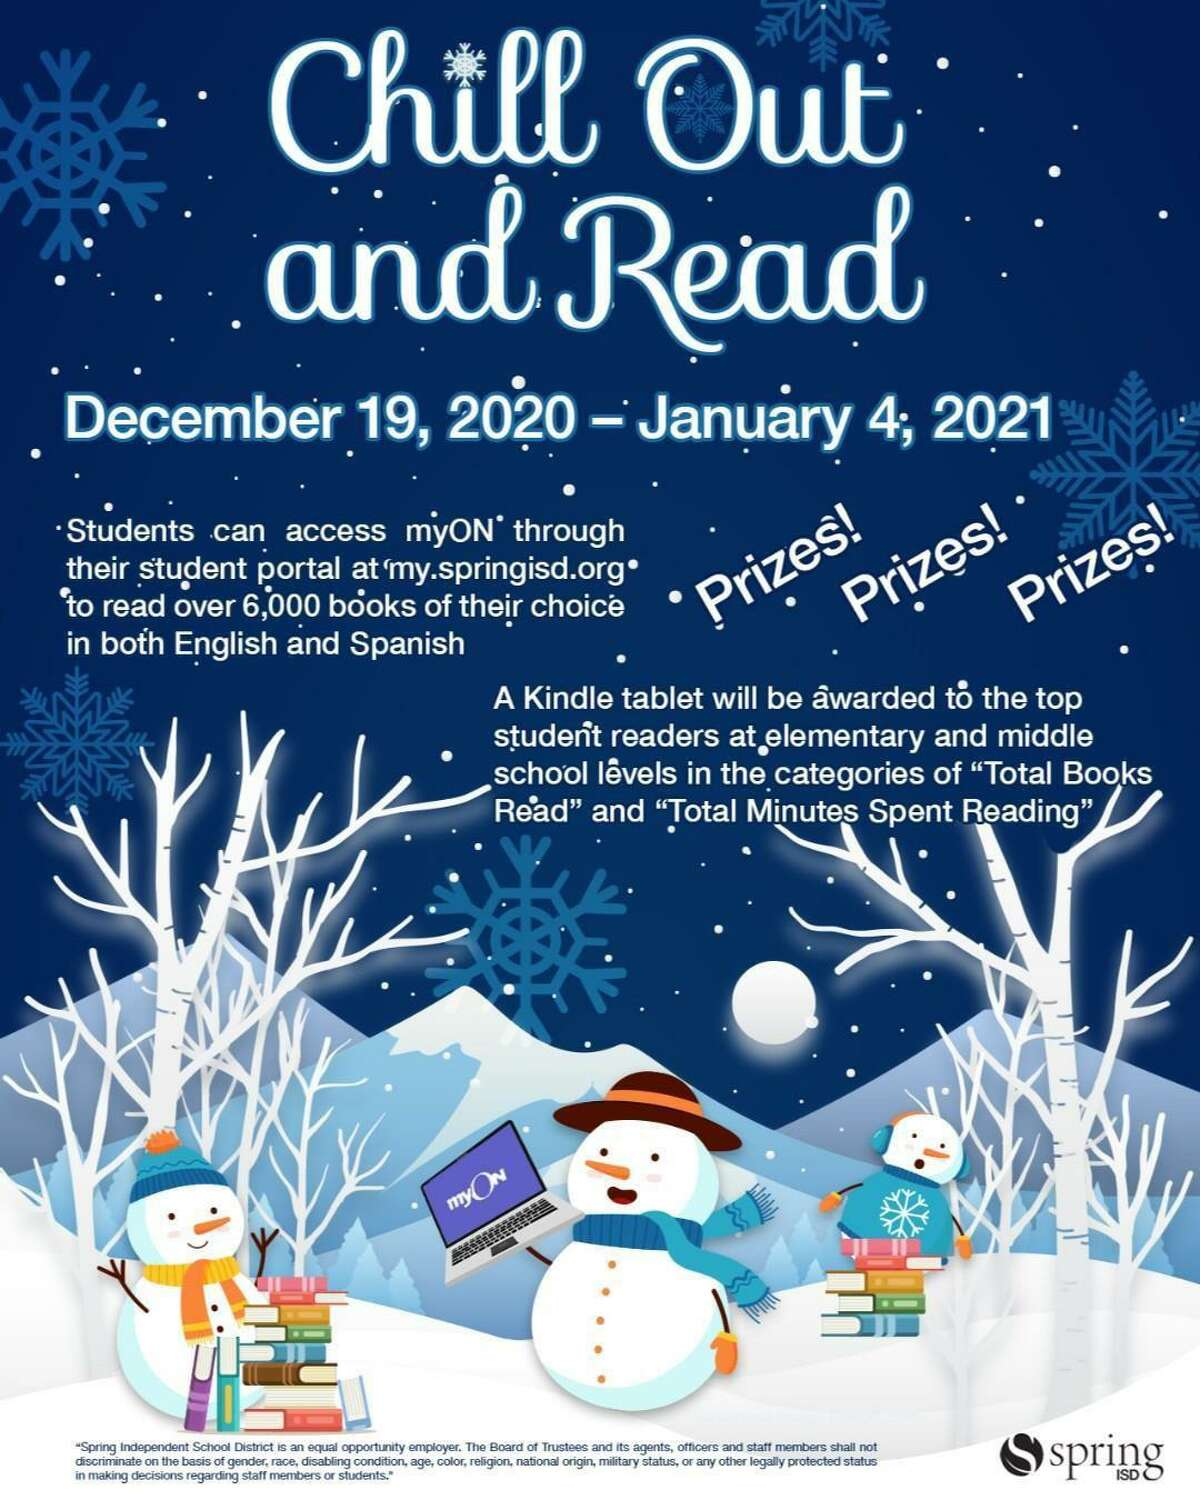 Spring ISD will award a Kindle tablet to the top-reading elementary and middle school students over the holiday break.